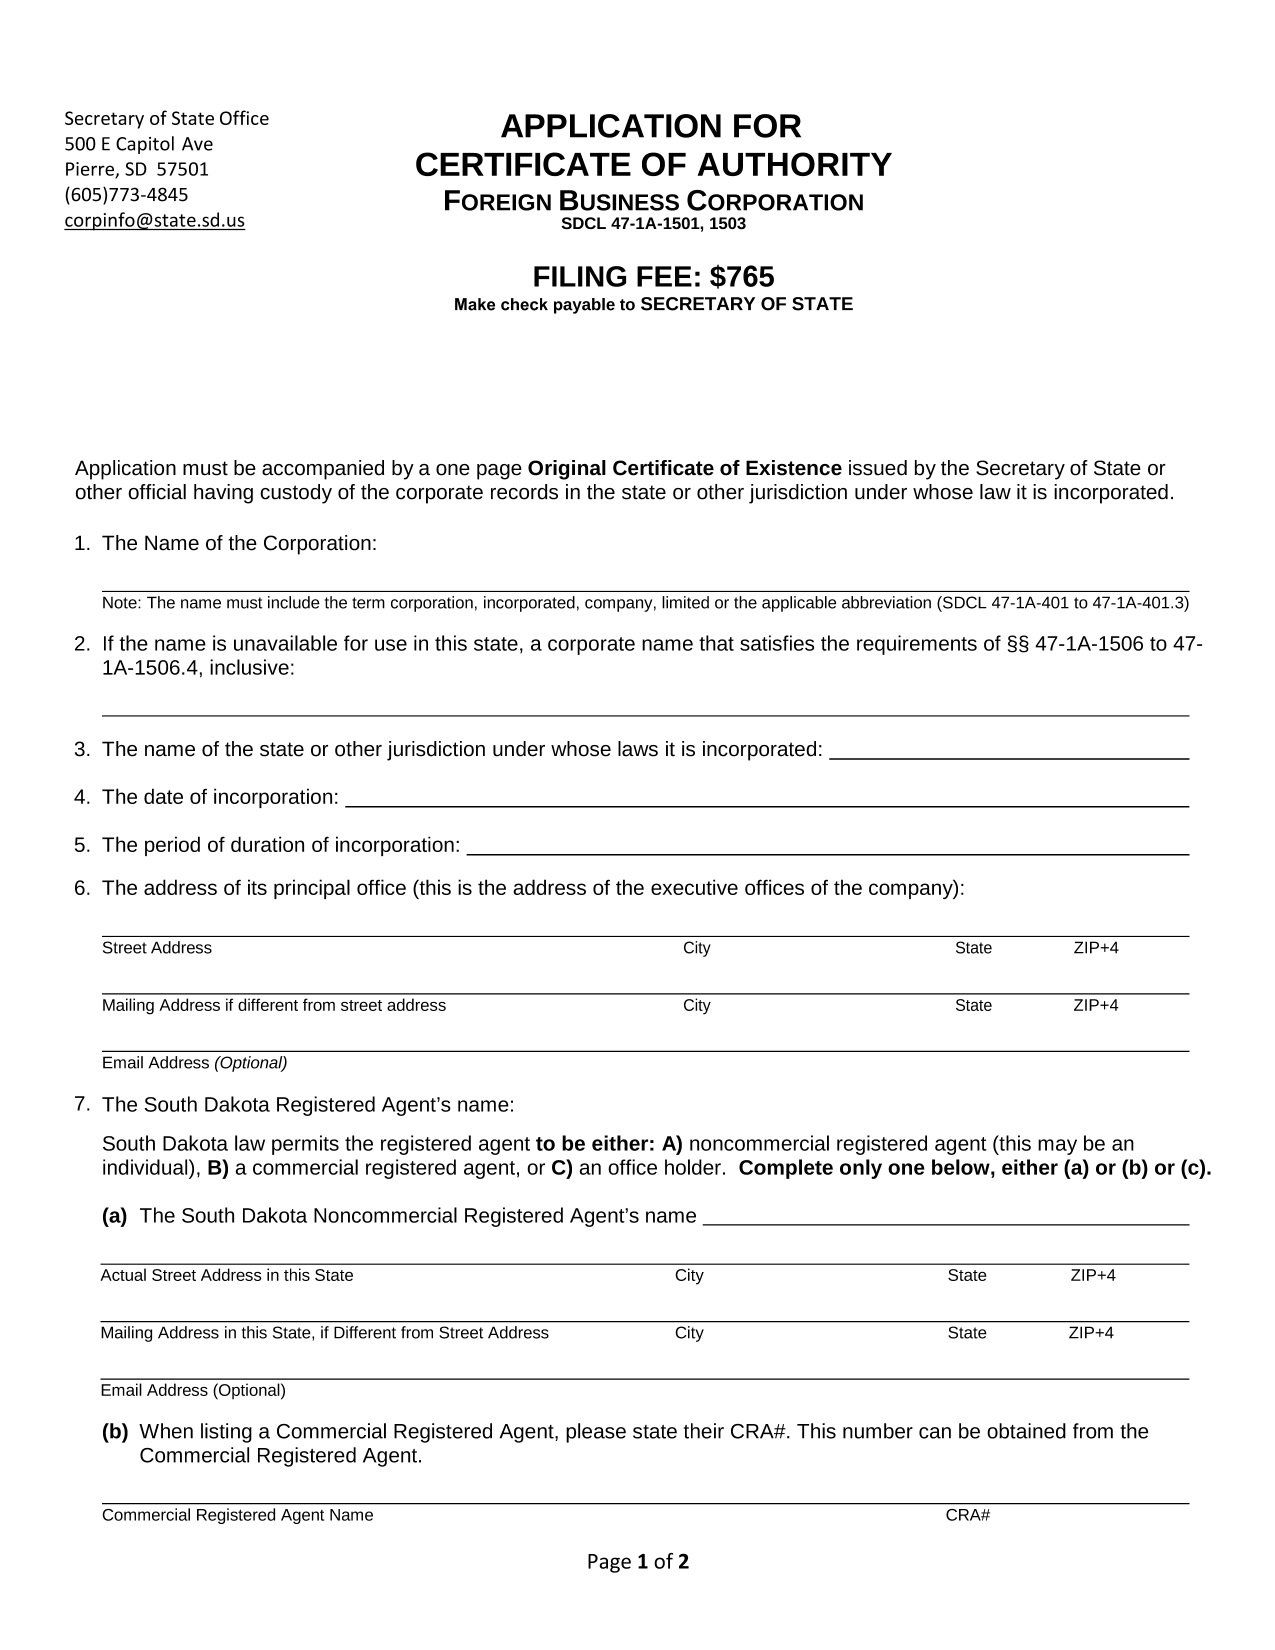 south-dakota-foreign-corporation-application-for-certificate-of-authority